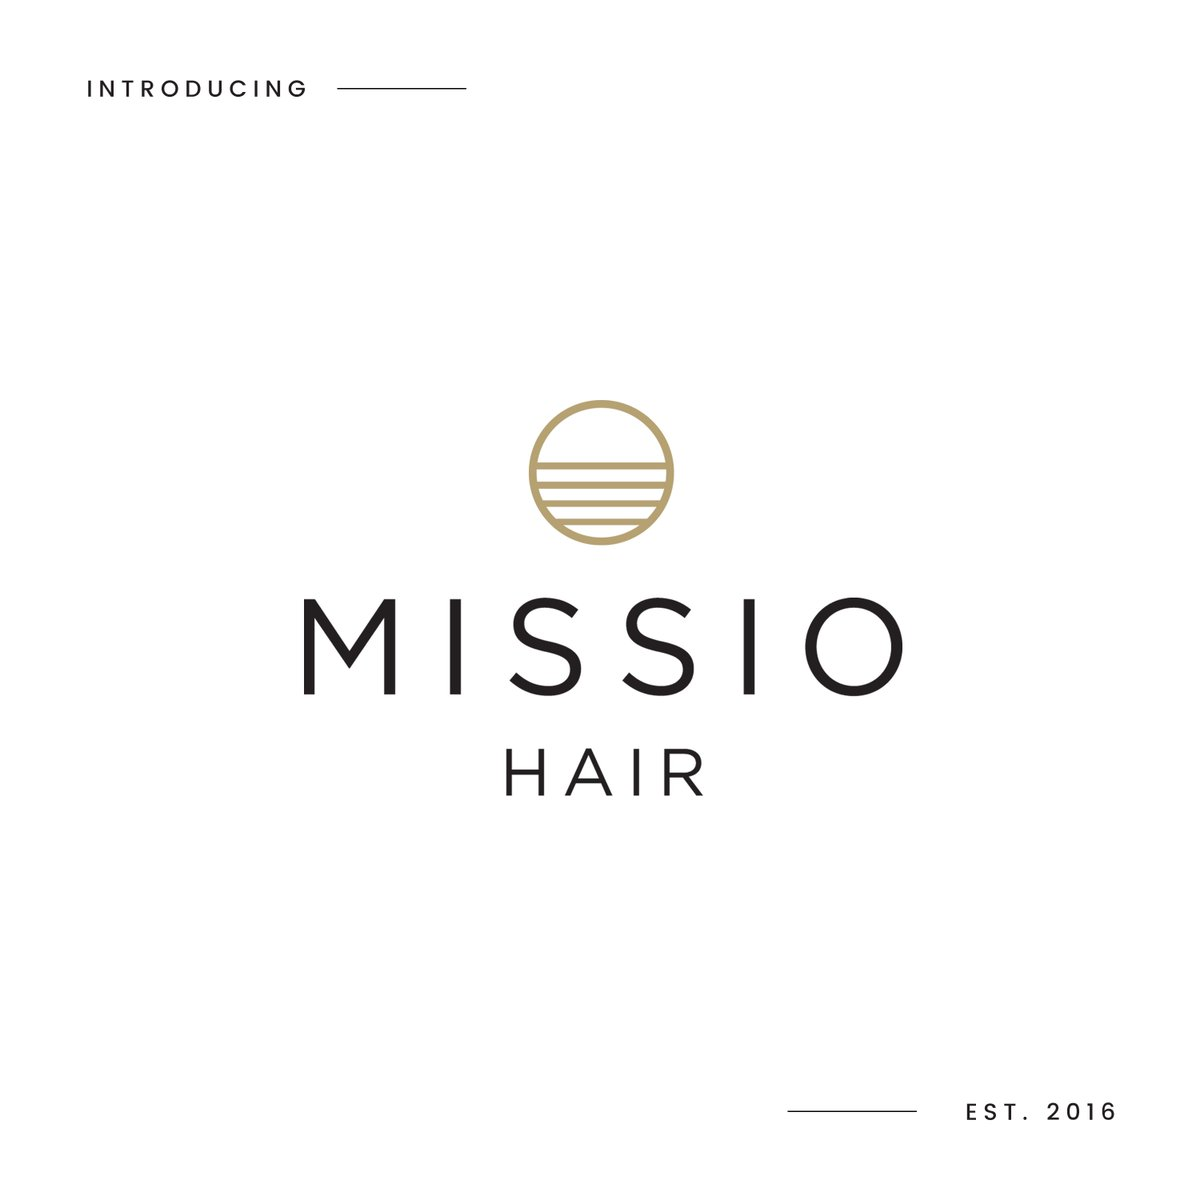 MISSIO - Launched in 2017, MISSIO is a hair product company that exists to inspire and empower a movement of people in the fight against human trafficking. The experiences of stylist Lorin Van Zandt using beauty to help women emerging from human trafficking, alongside her husband Kyle's desire to fight this injustice, led them to create hair product with purpose.